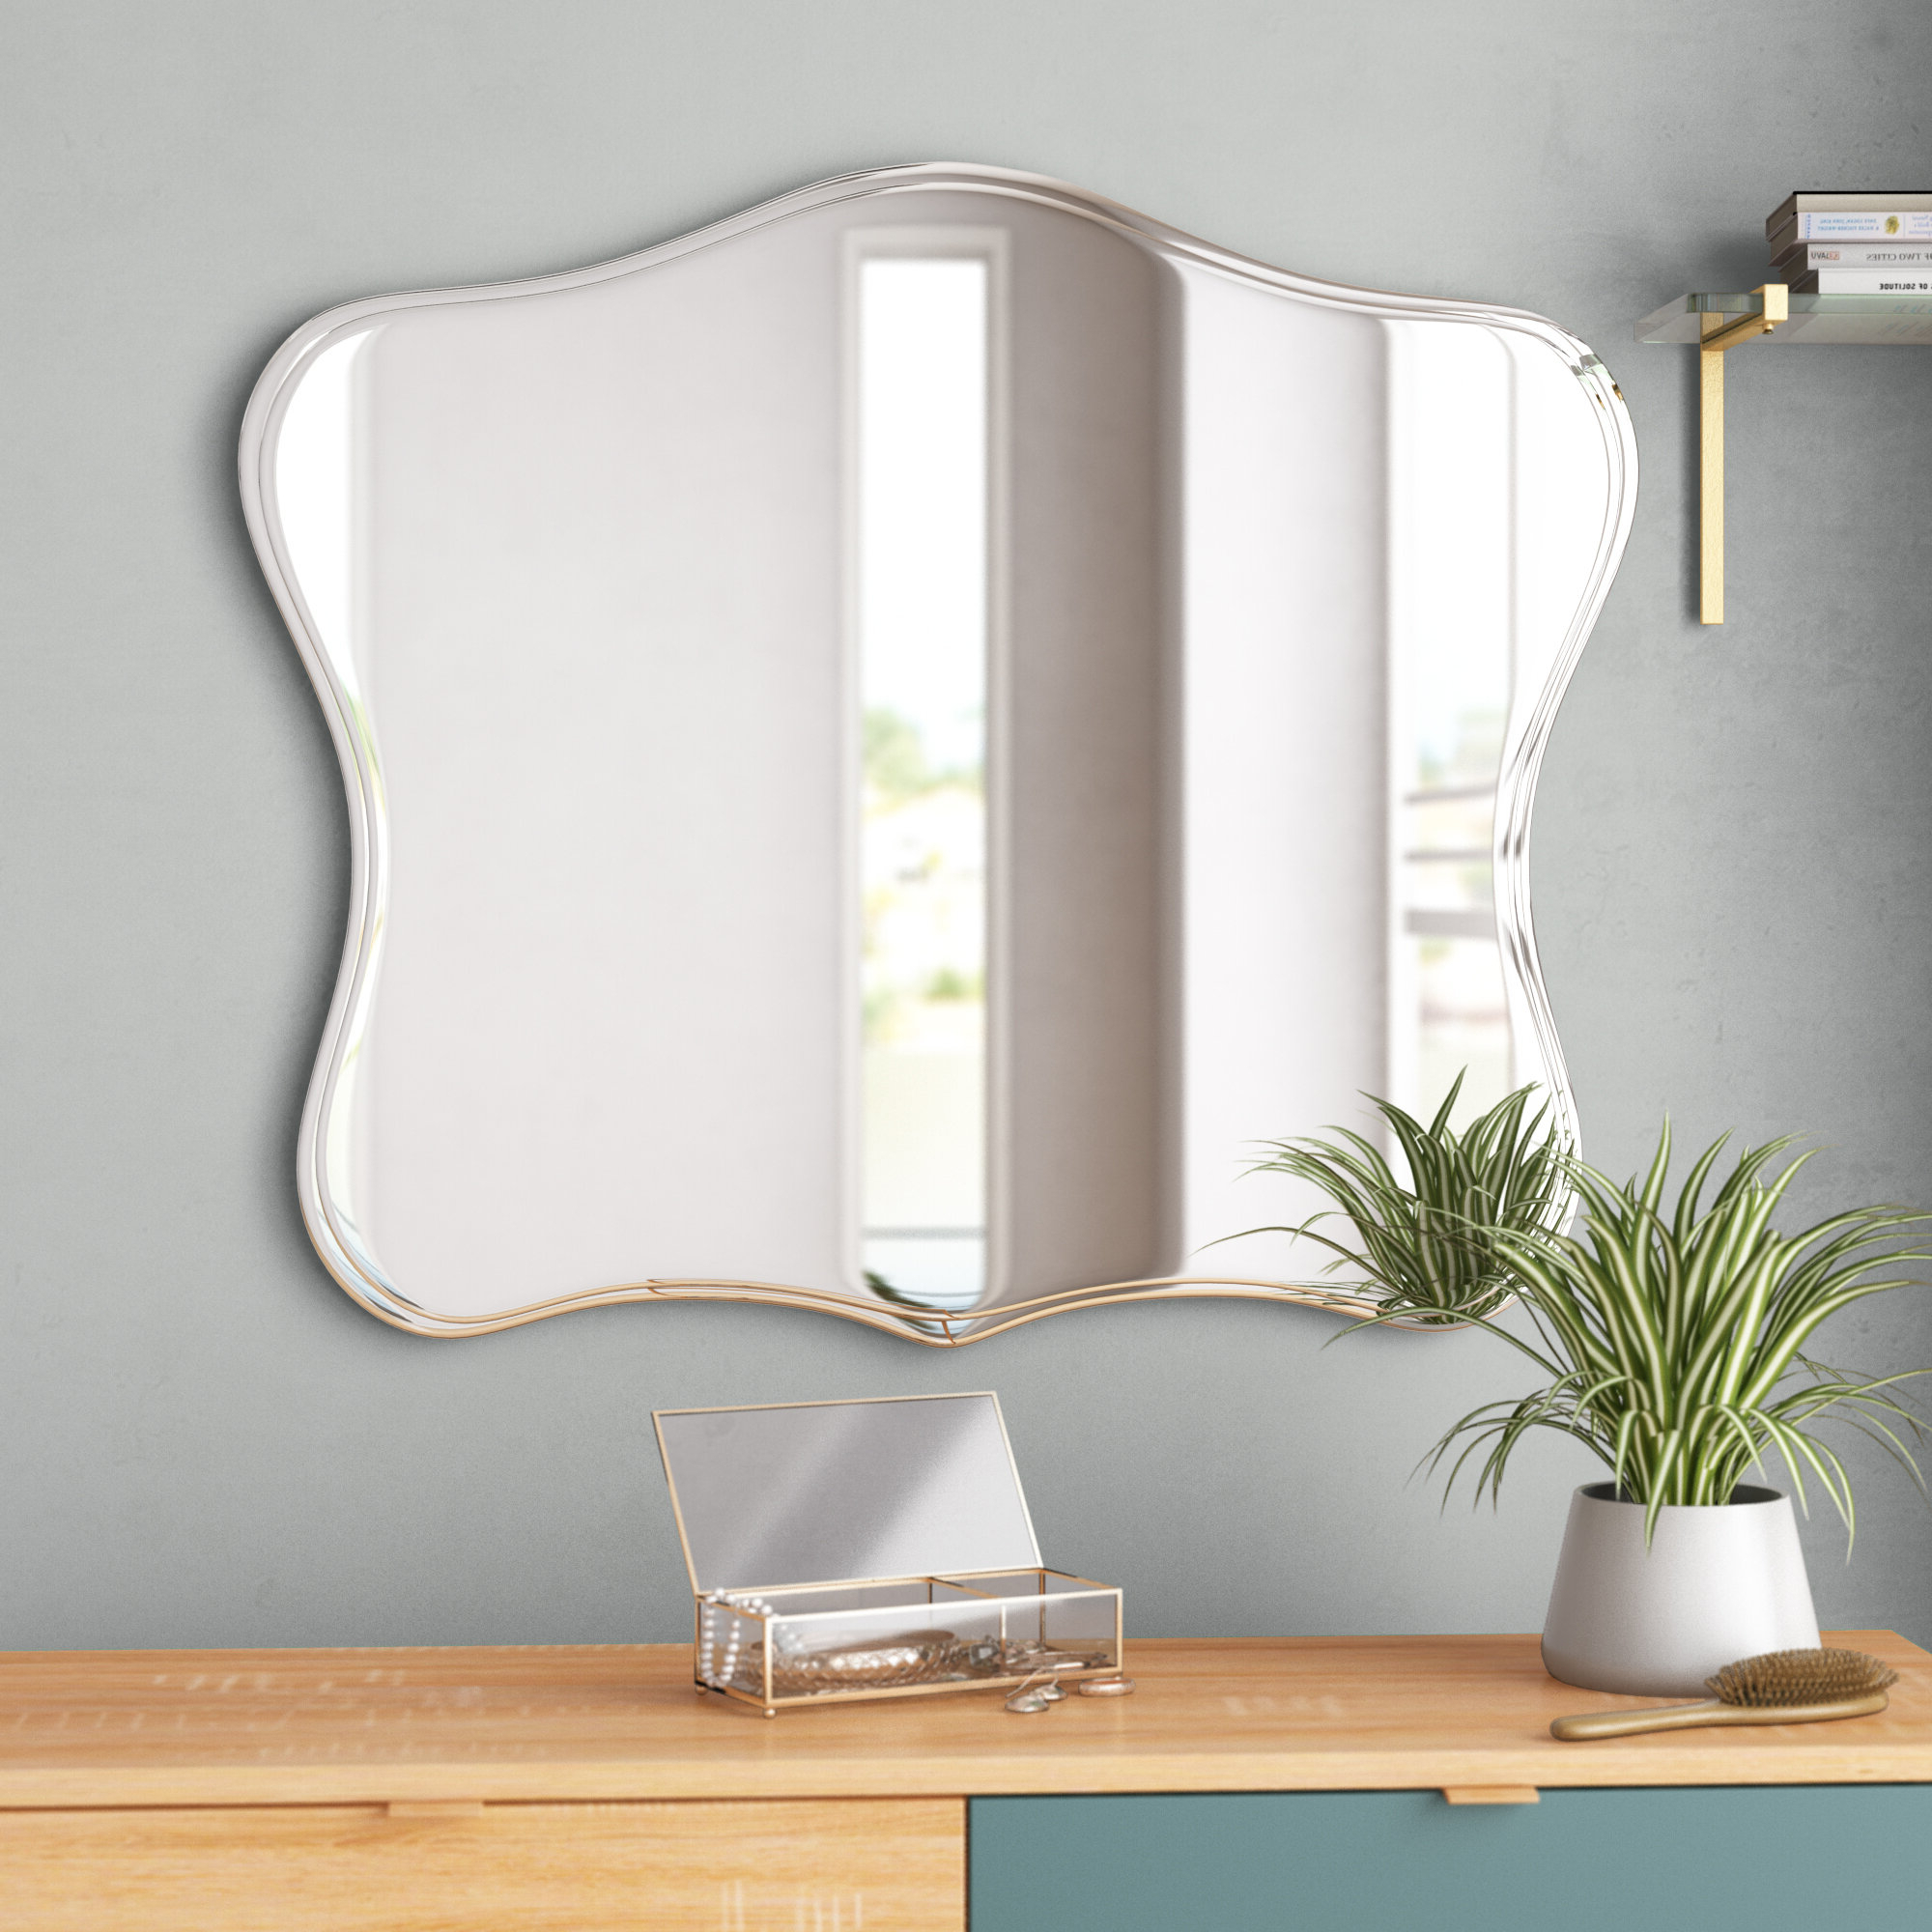 Most Popular Fancy Wall Mirrors With Regard To Titsworth Frameless Fancy Wall Mirror (View 10 of 20)